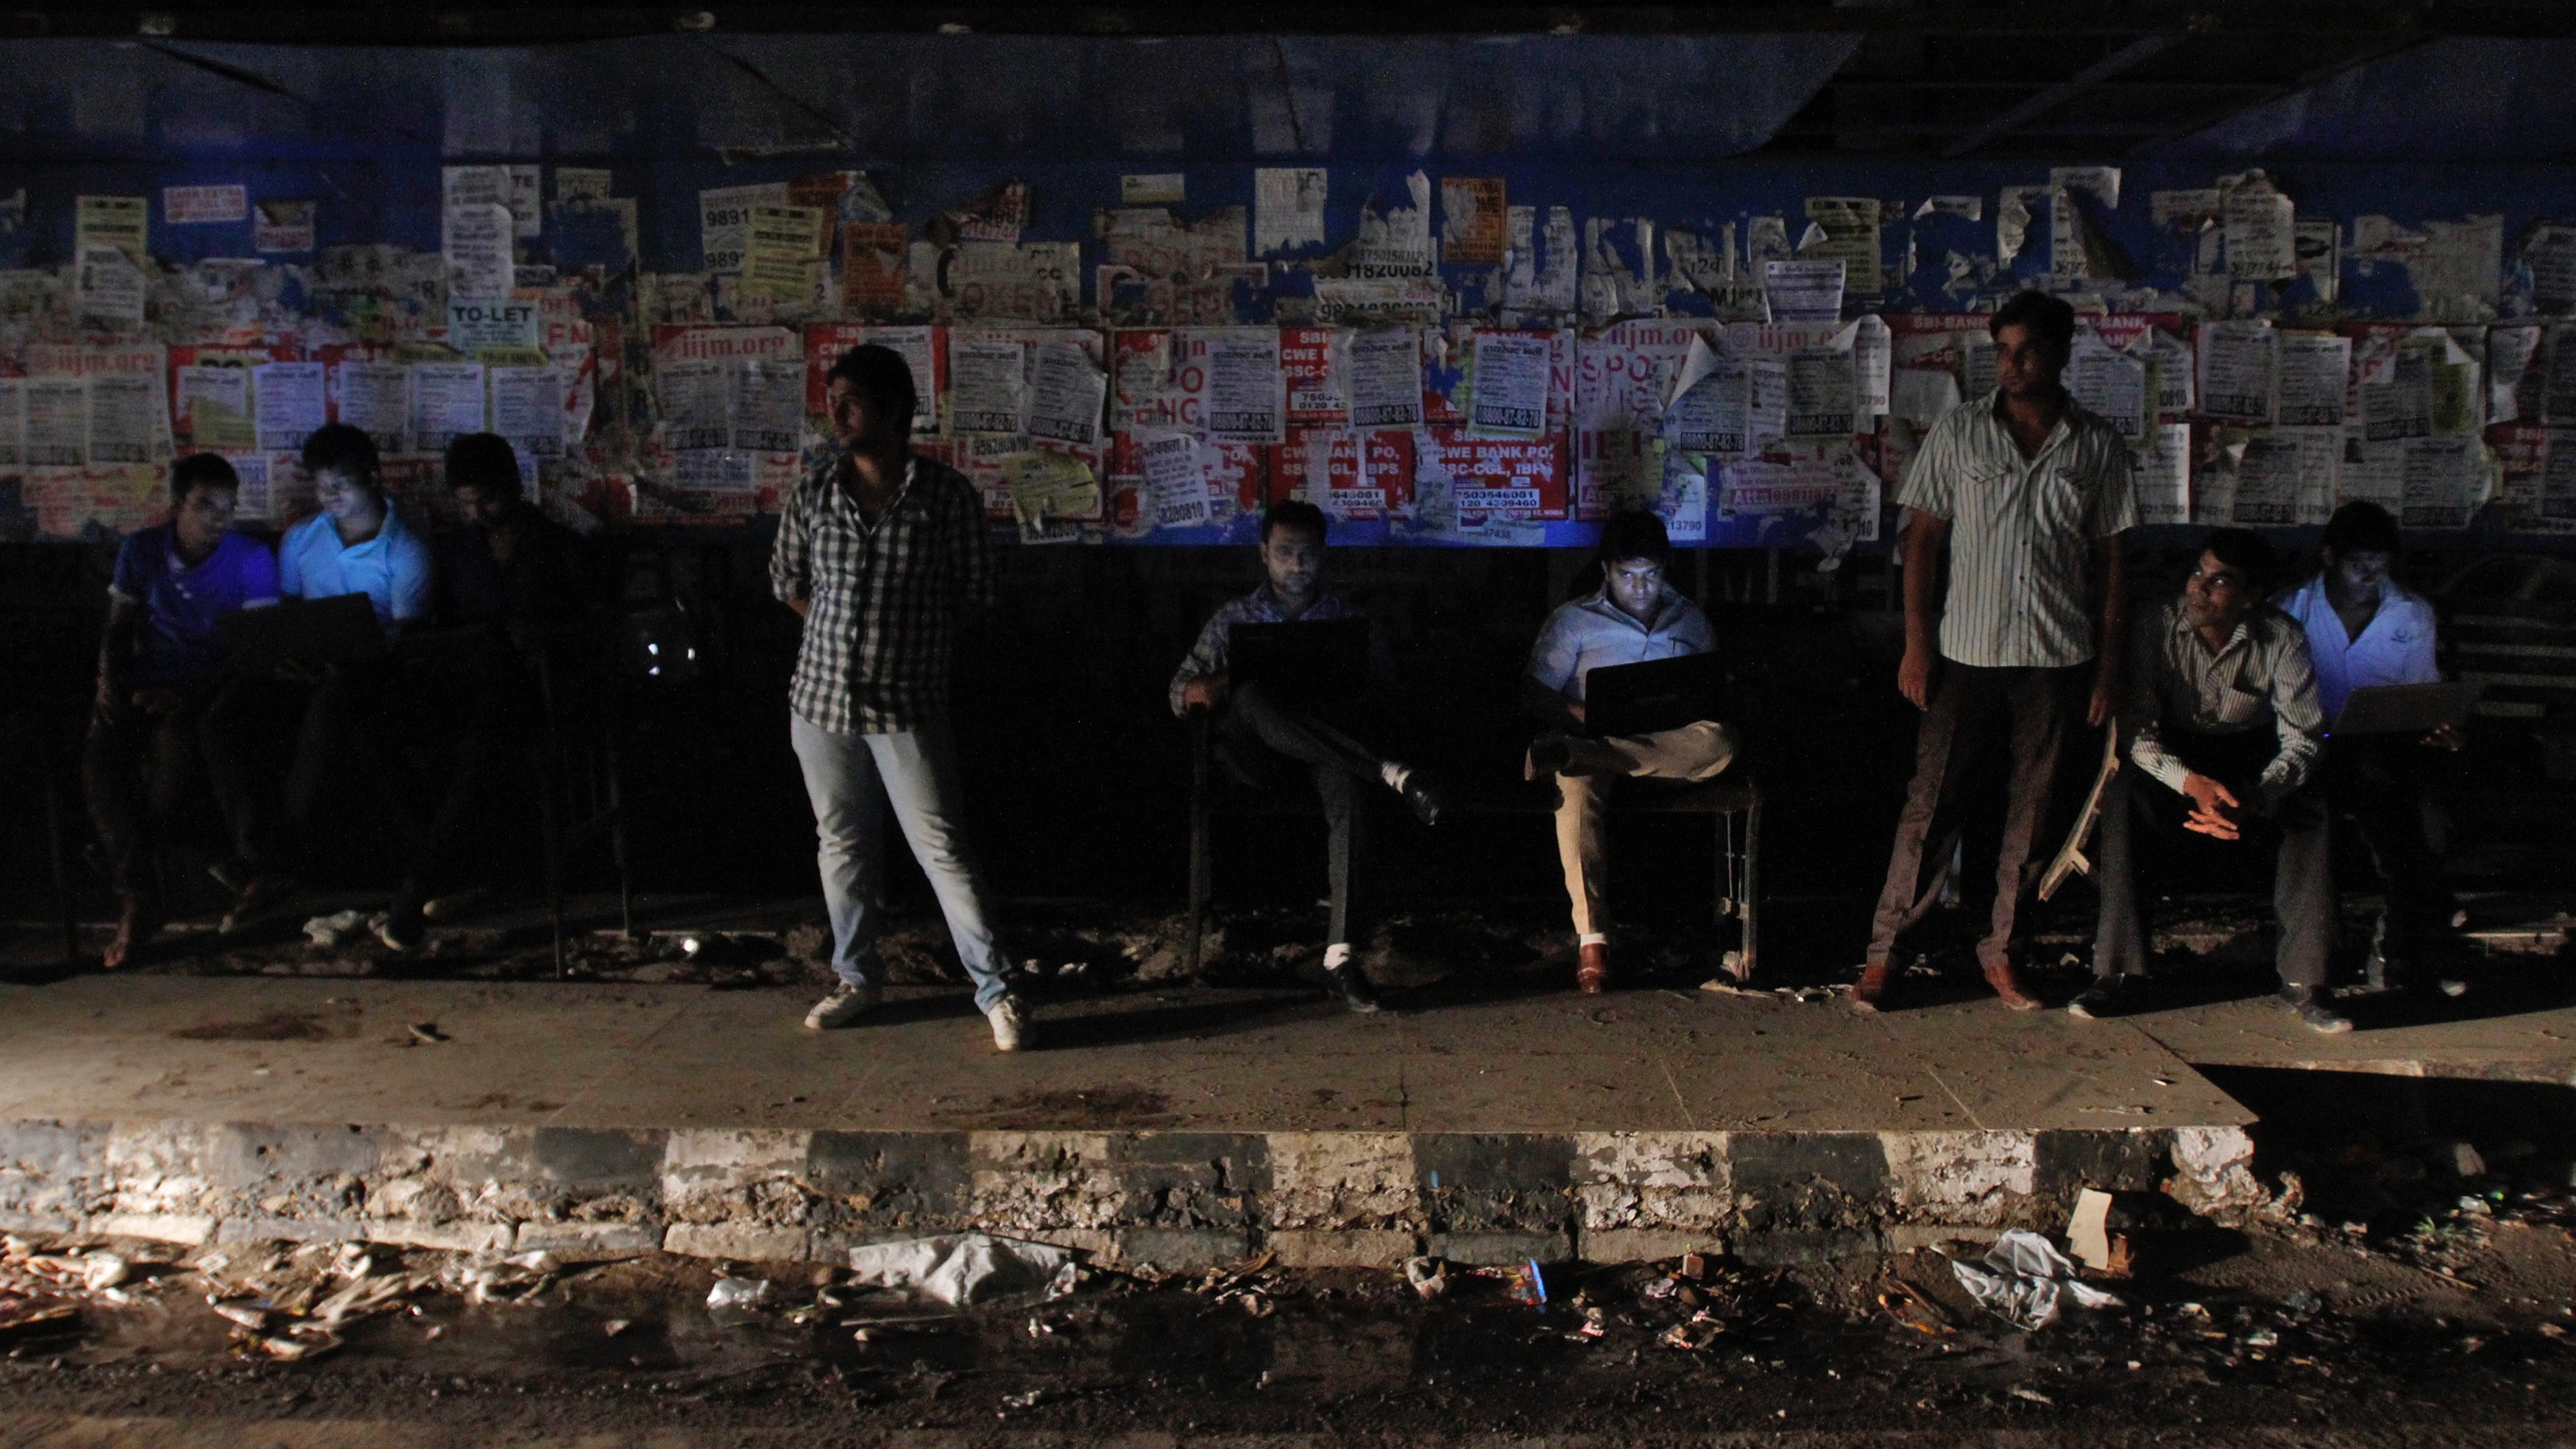 Commuters work on their laptops as they wait for the bus to arrive at a bus-stop during a power-cut at Noida